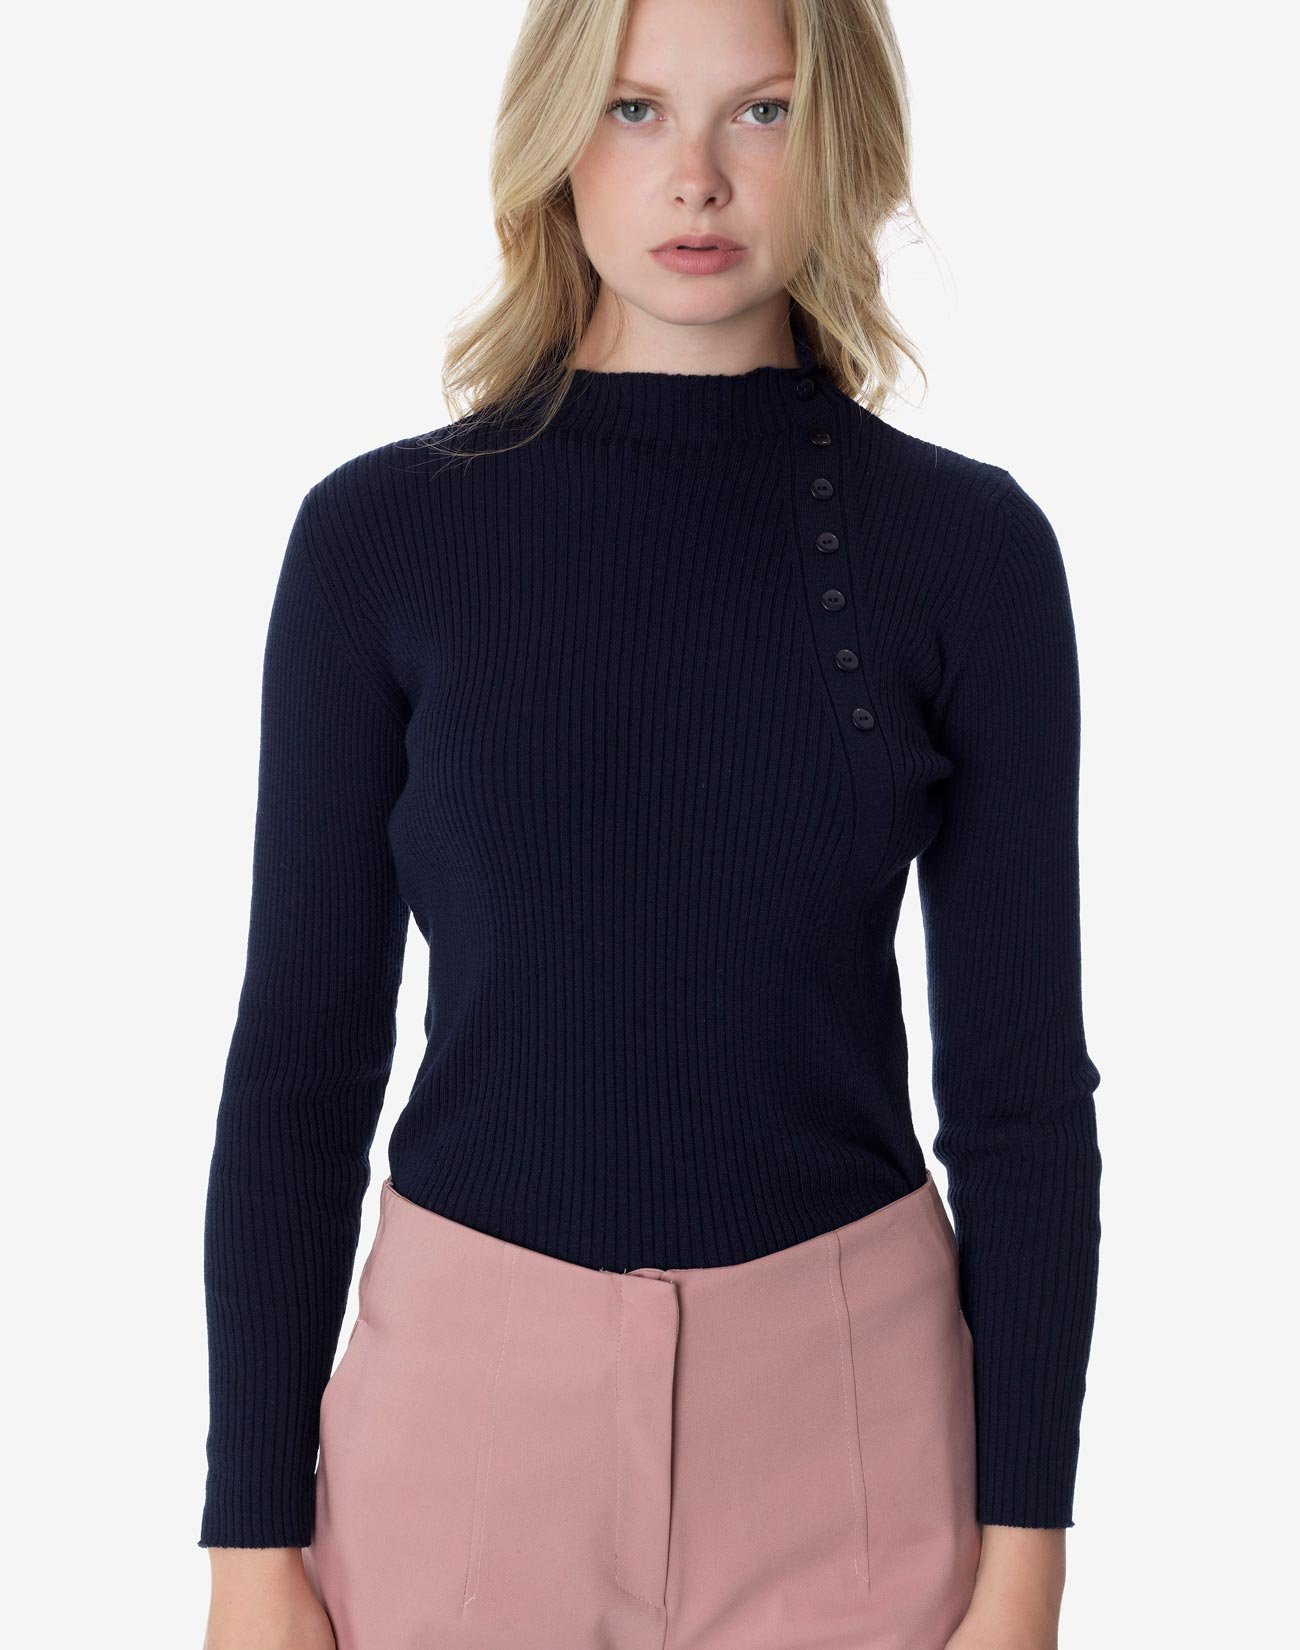 Ribbed knit top with buttons